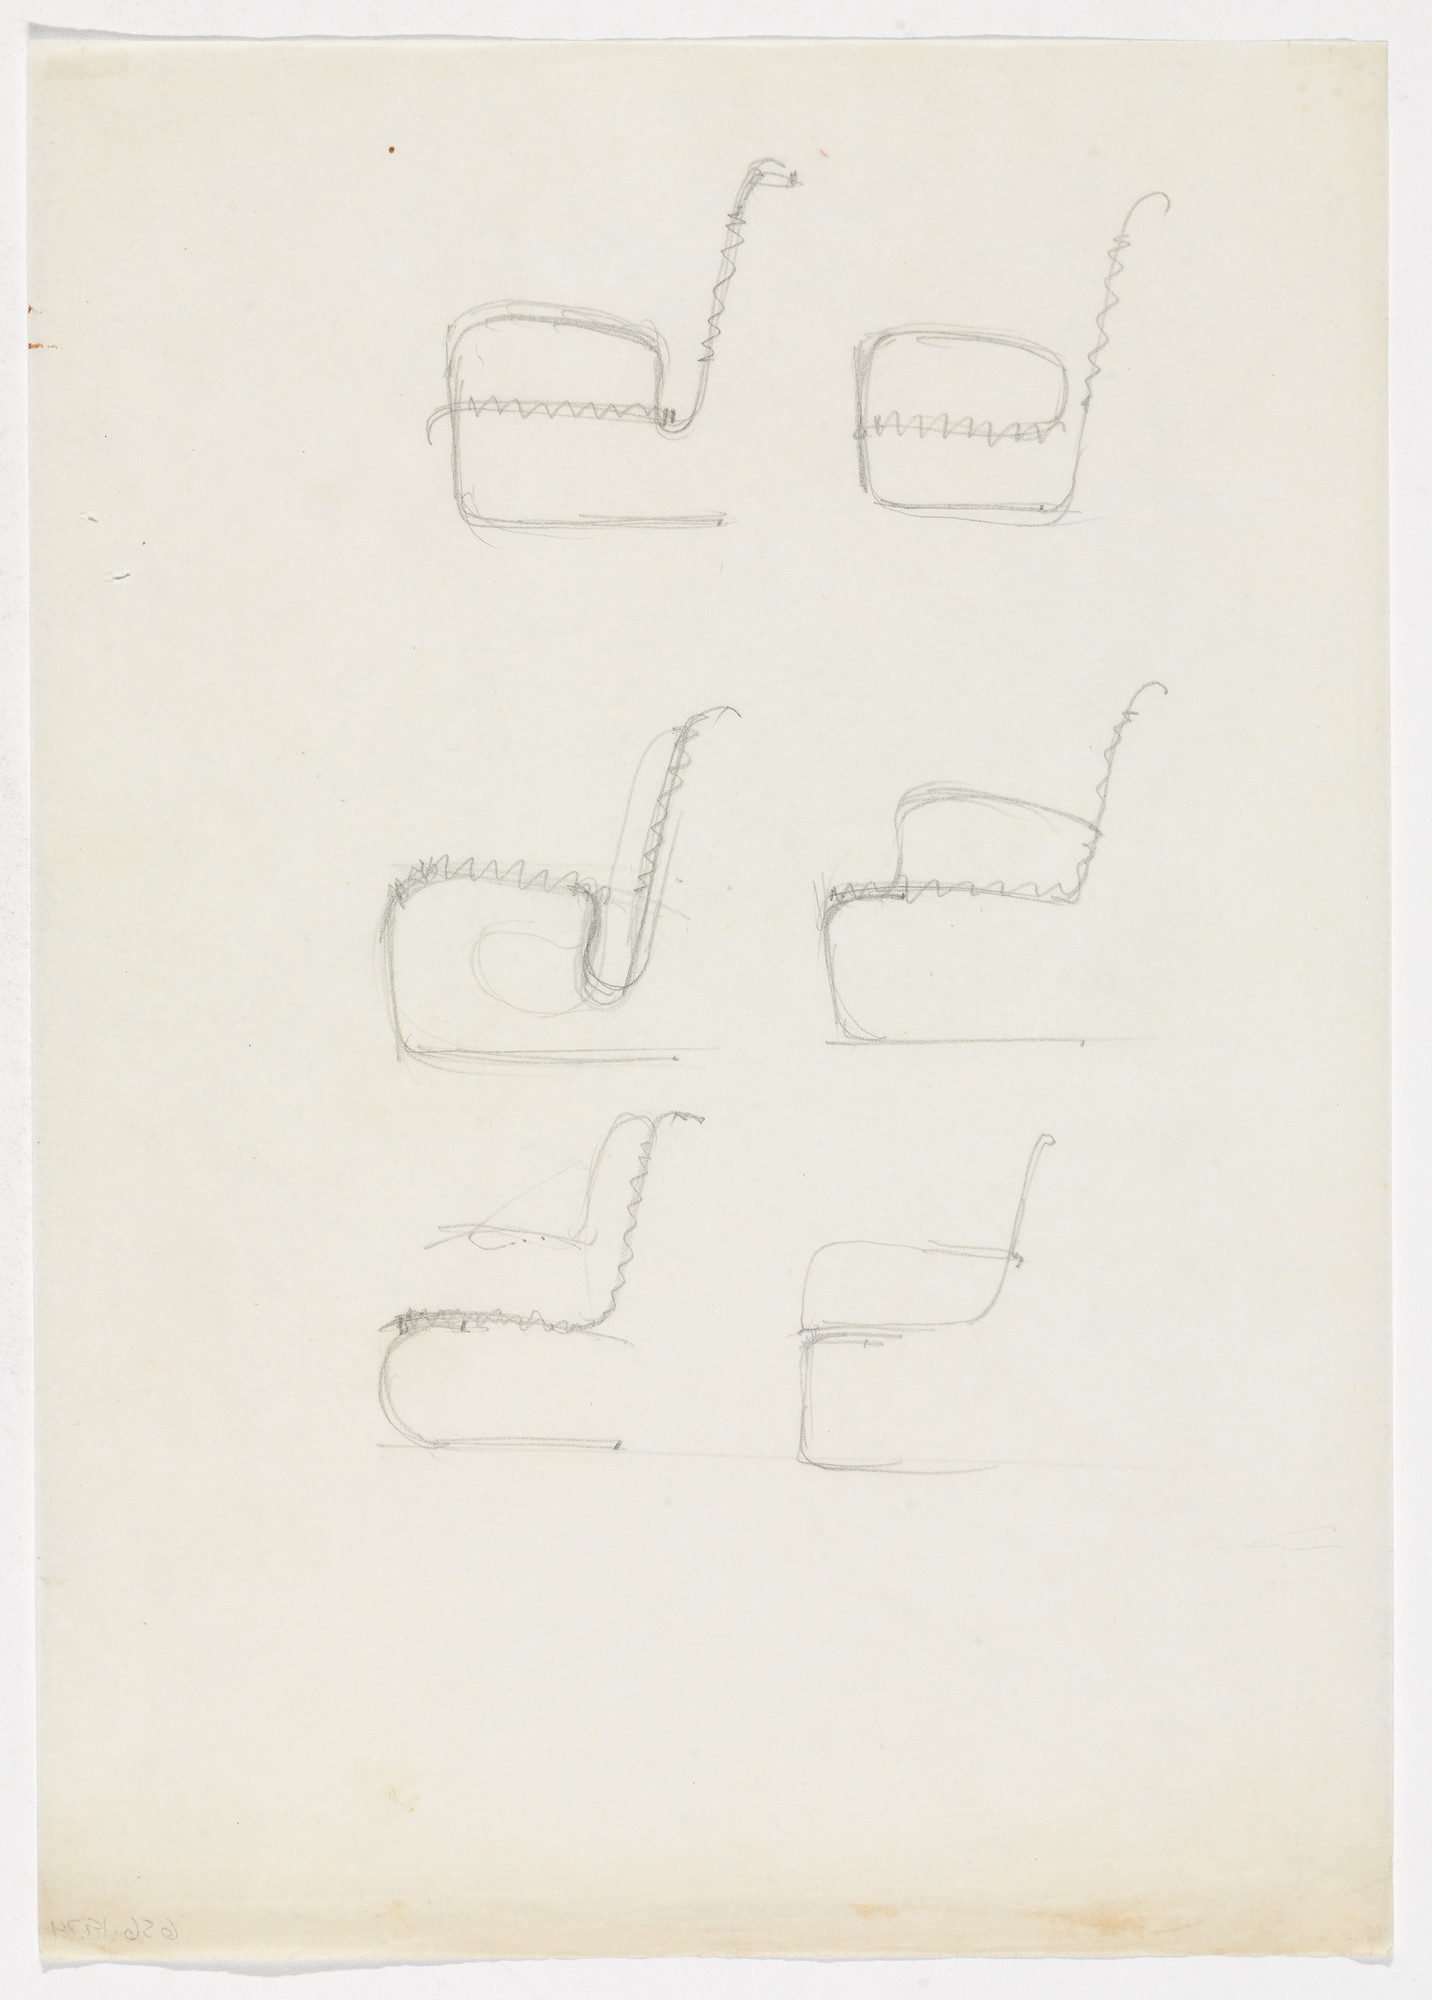 Ludwig Mies van der Rohe. Chairs with Arms (Three elevation sketches). 1934